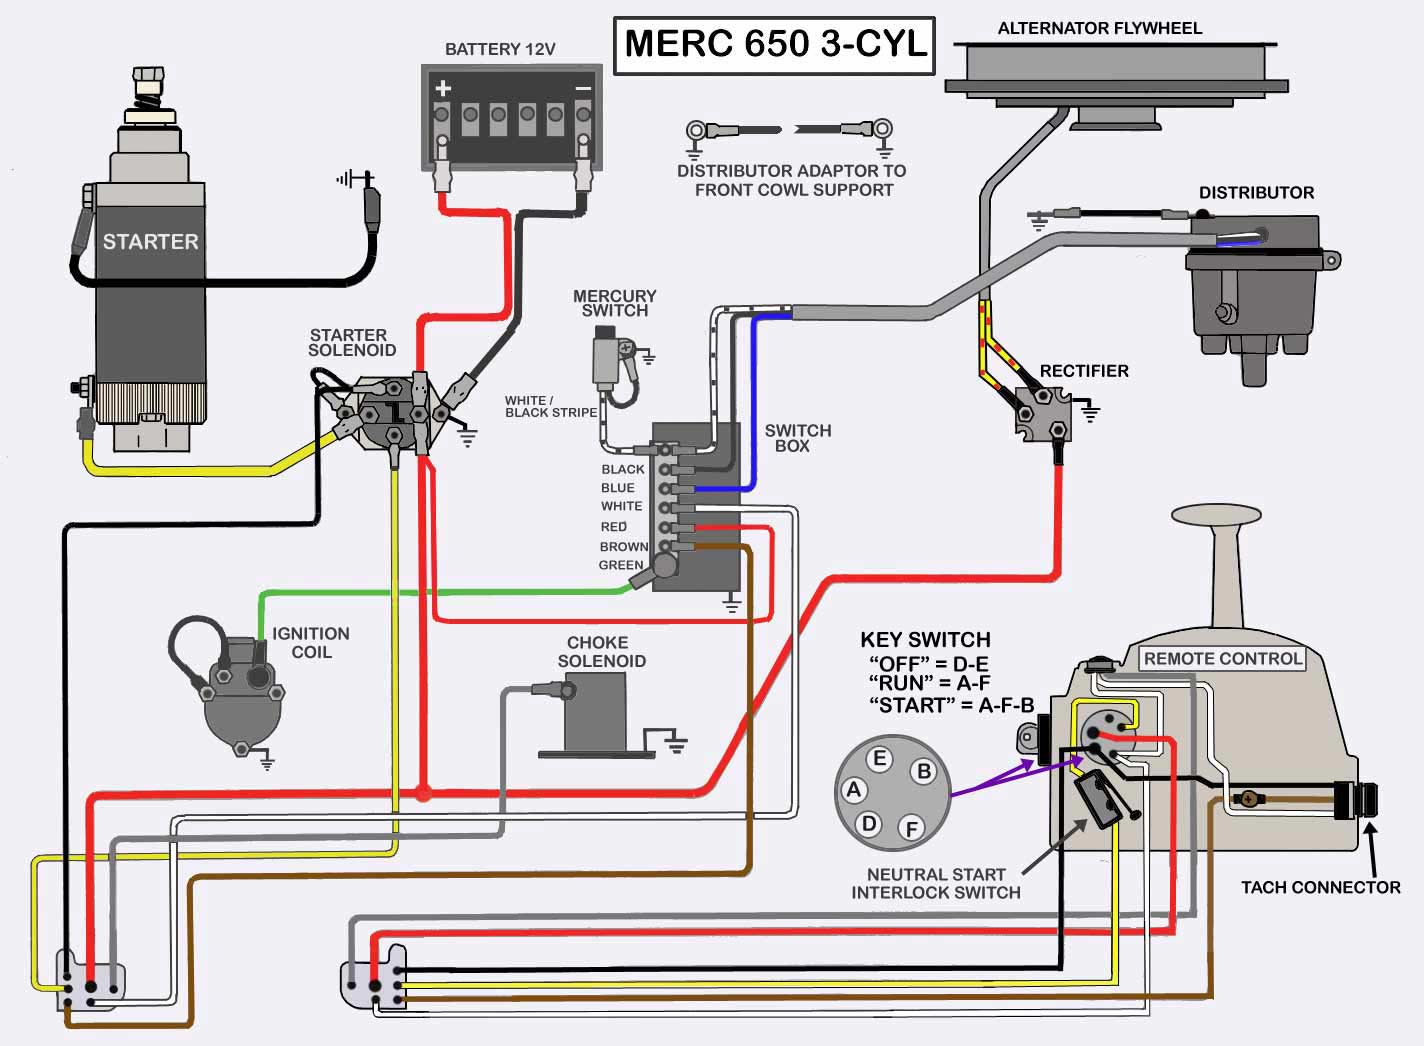 1984 mercury outboard wiring library wiring diagram1984 mercury 35 key switch wiring wiring diagrams mercury outboard [ 1424 x 1046 Pixel ]